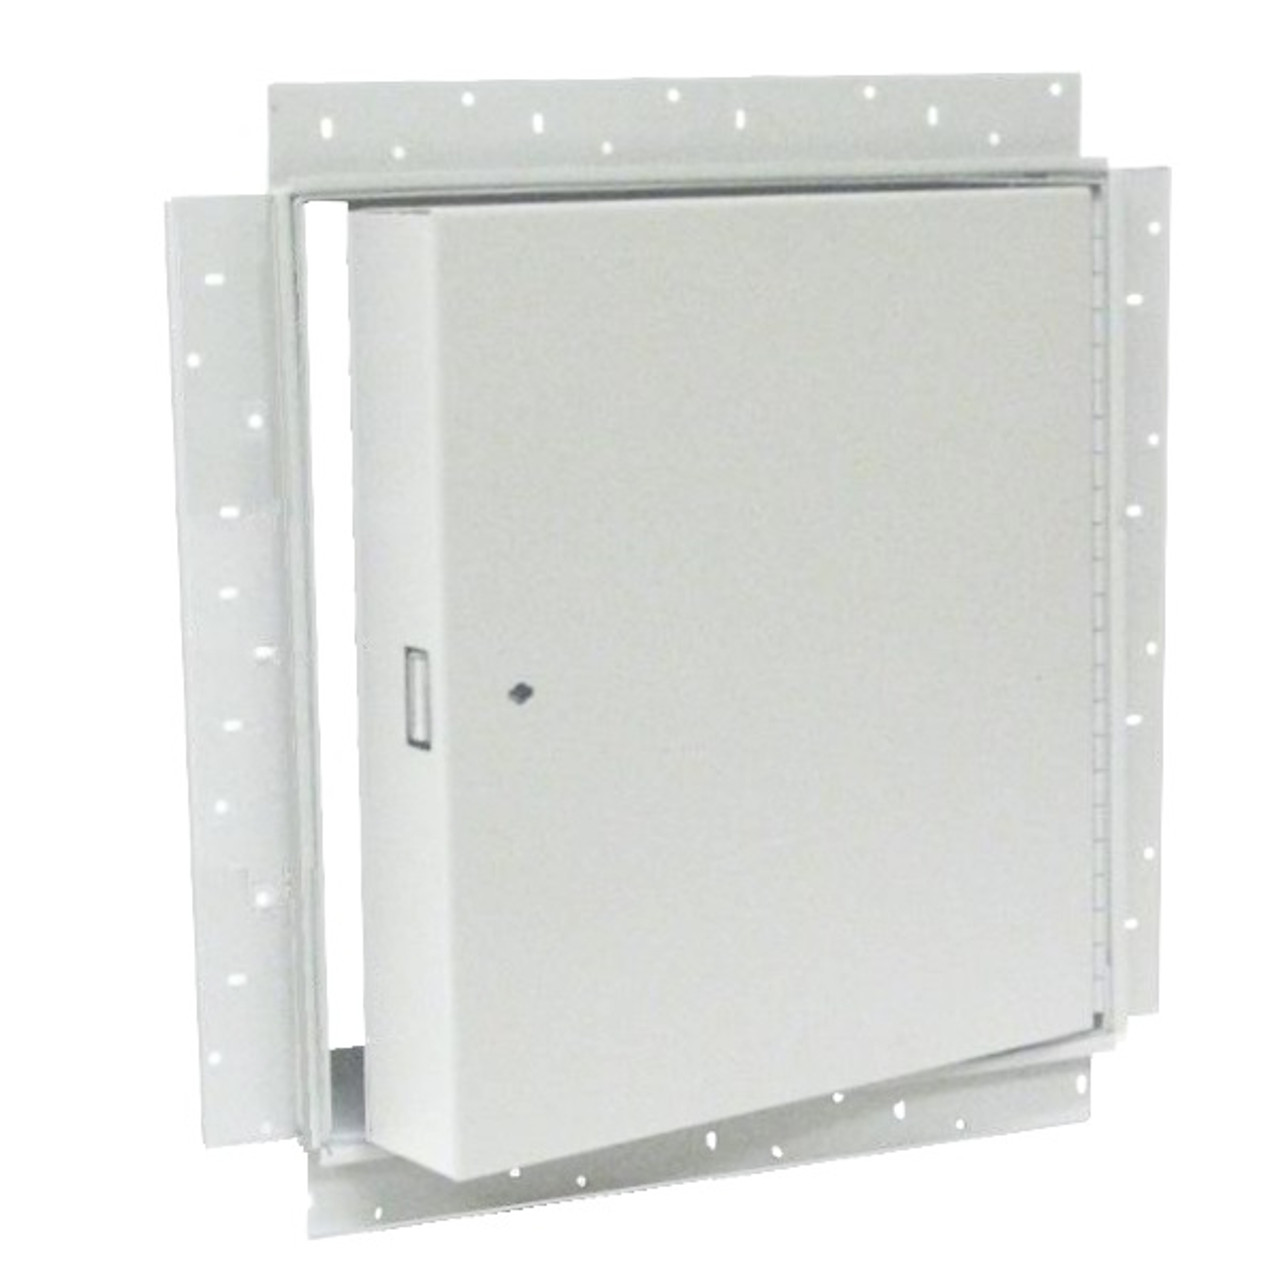 16in x 16in FDPW-Series Insulated Fire Rated Access Door for Walls and Ceilings w/Interior \u0026 White powder coat primer  sc 1 st  The Access Panel Store & 16in x 16in JL Industries FDPW-Series Access Panel